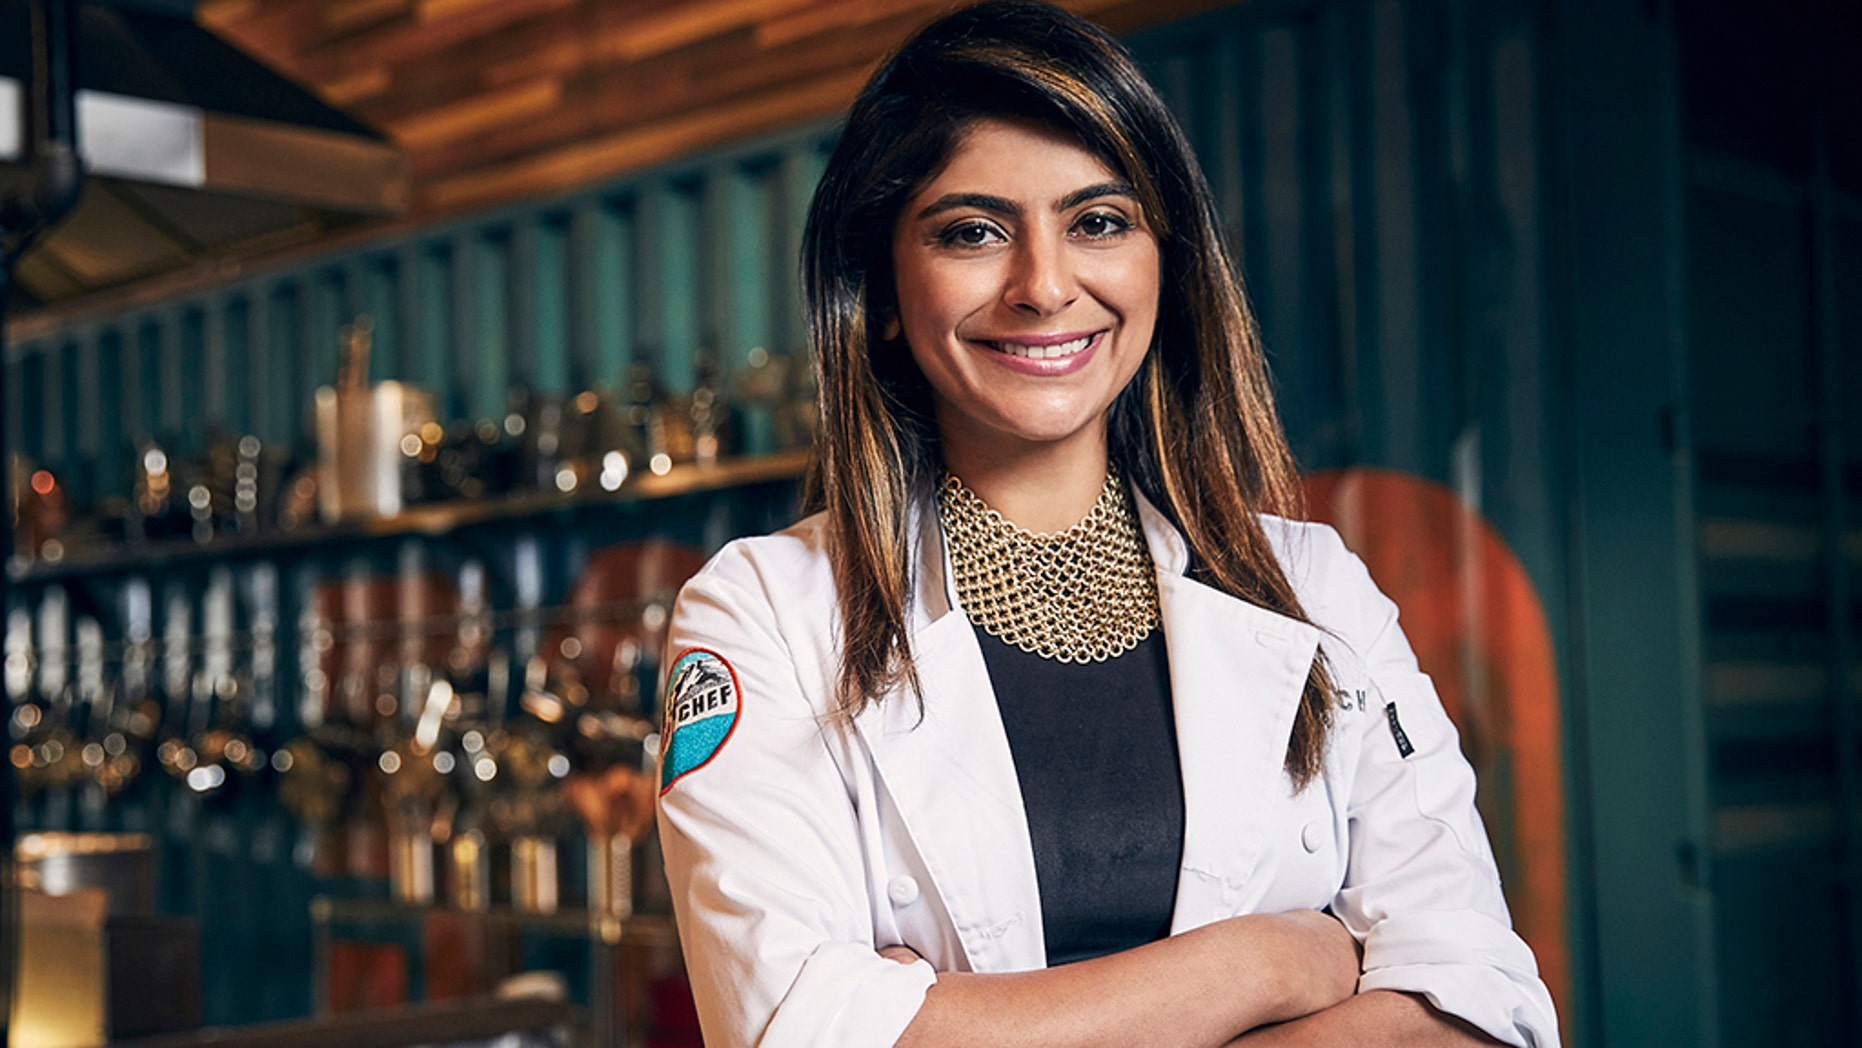 Former 'Top Chef' contestant Fatima Ali wrote a moving essay revealing she has a very short time to live due to terminal cancer.